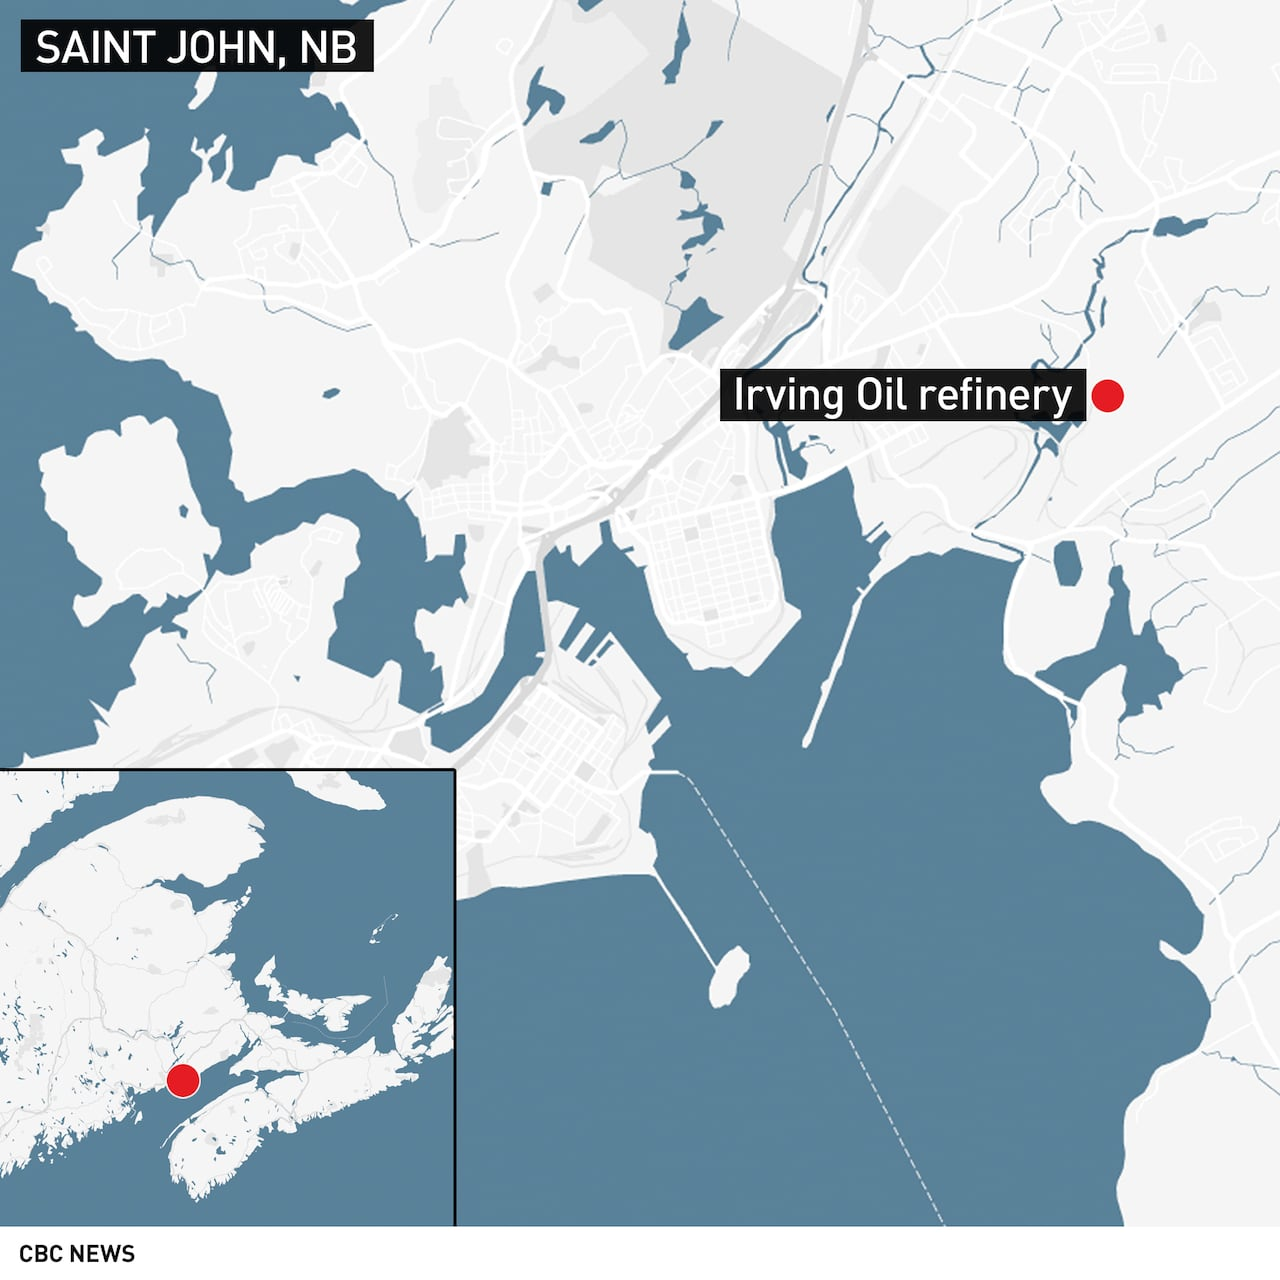 Following Saint John Oil Refinery Blast And Fire Irving Oil To - Us-oil-refineries-map